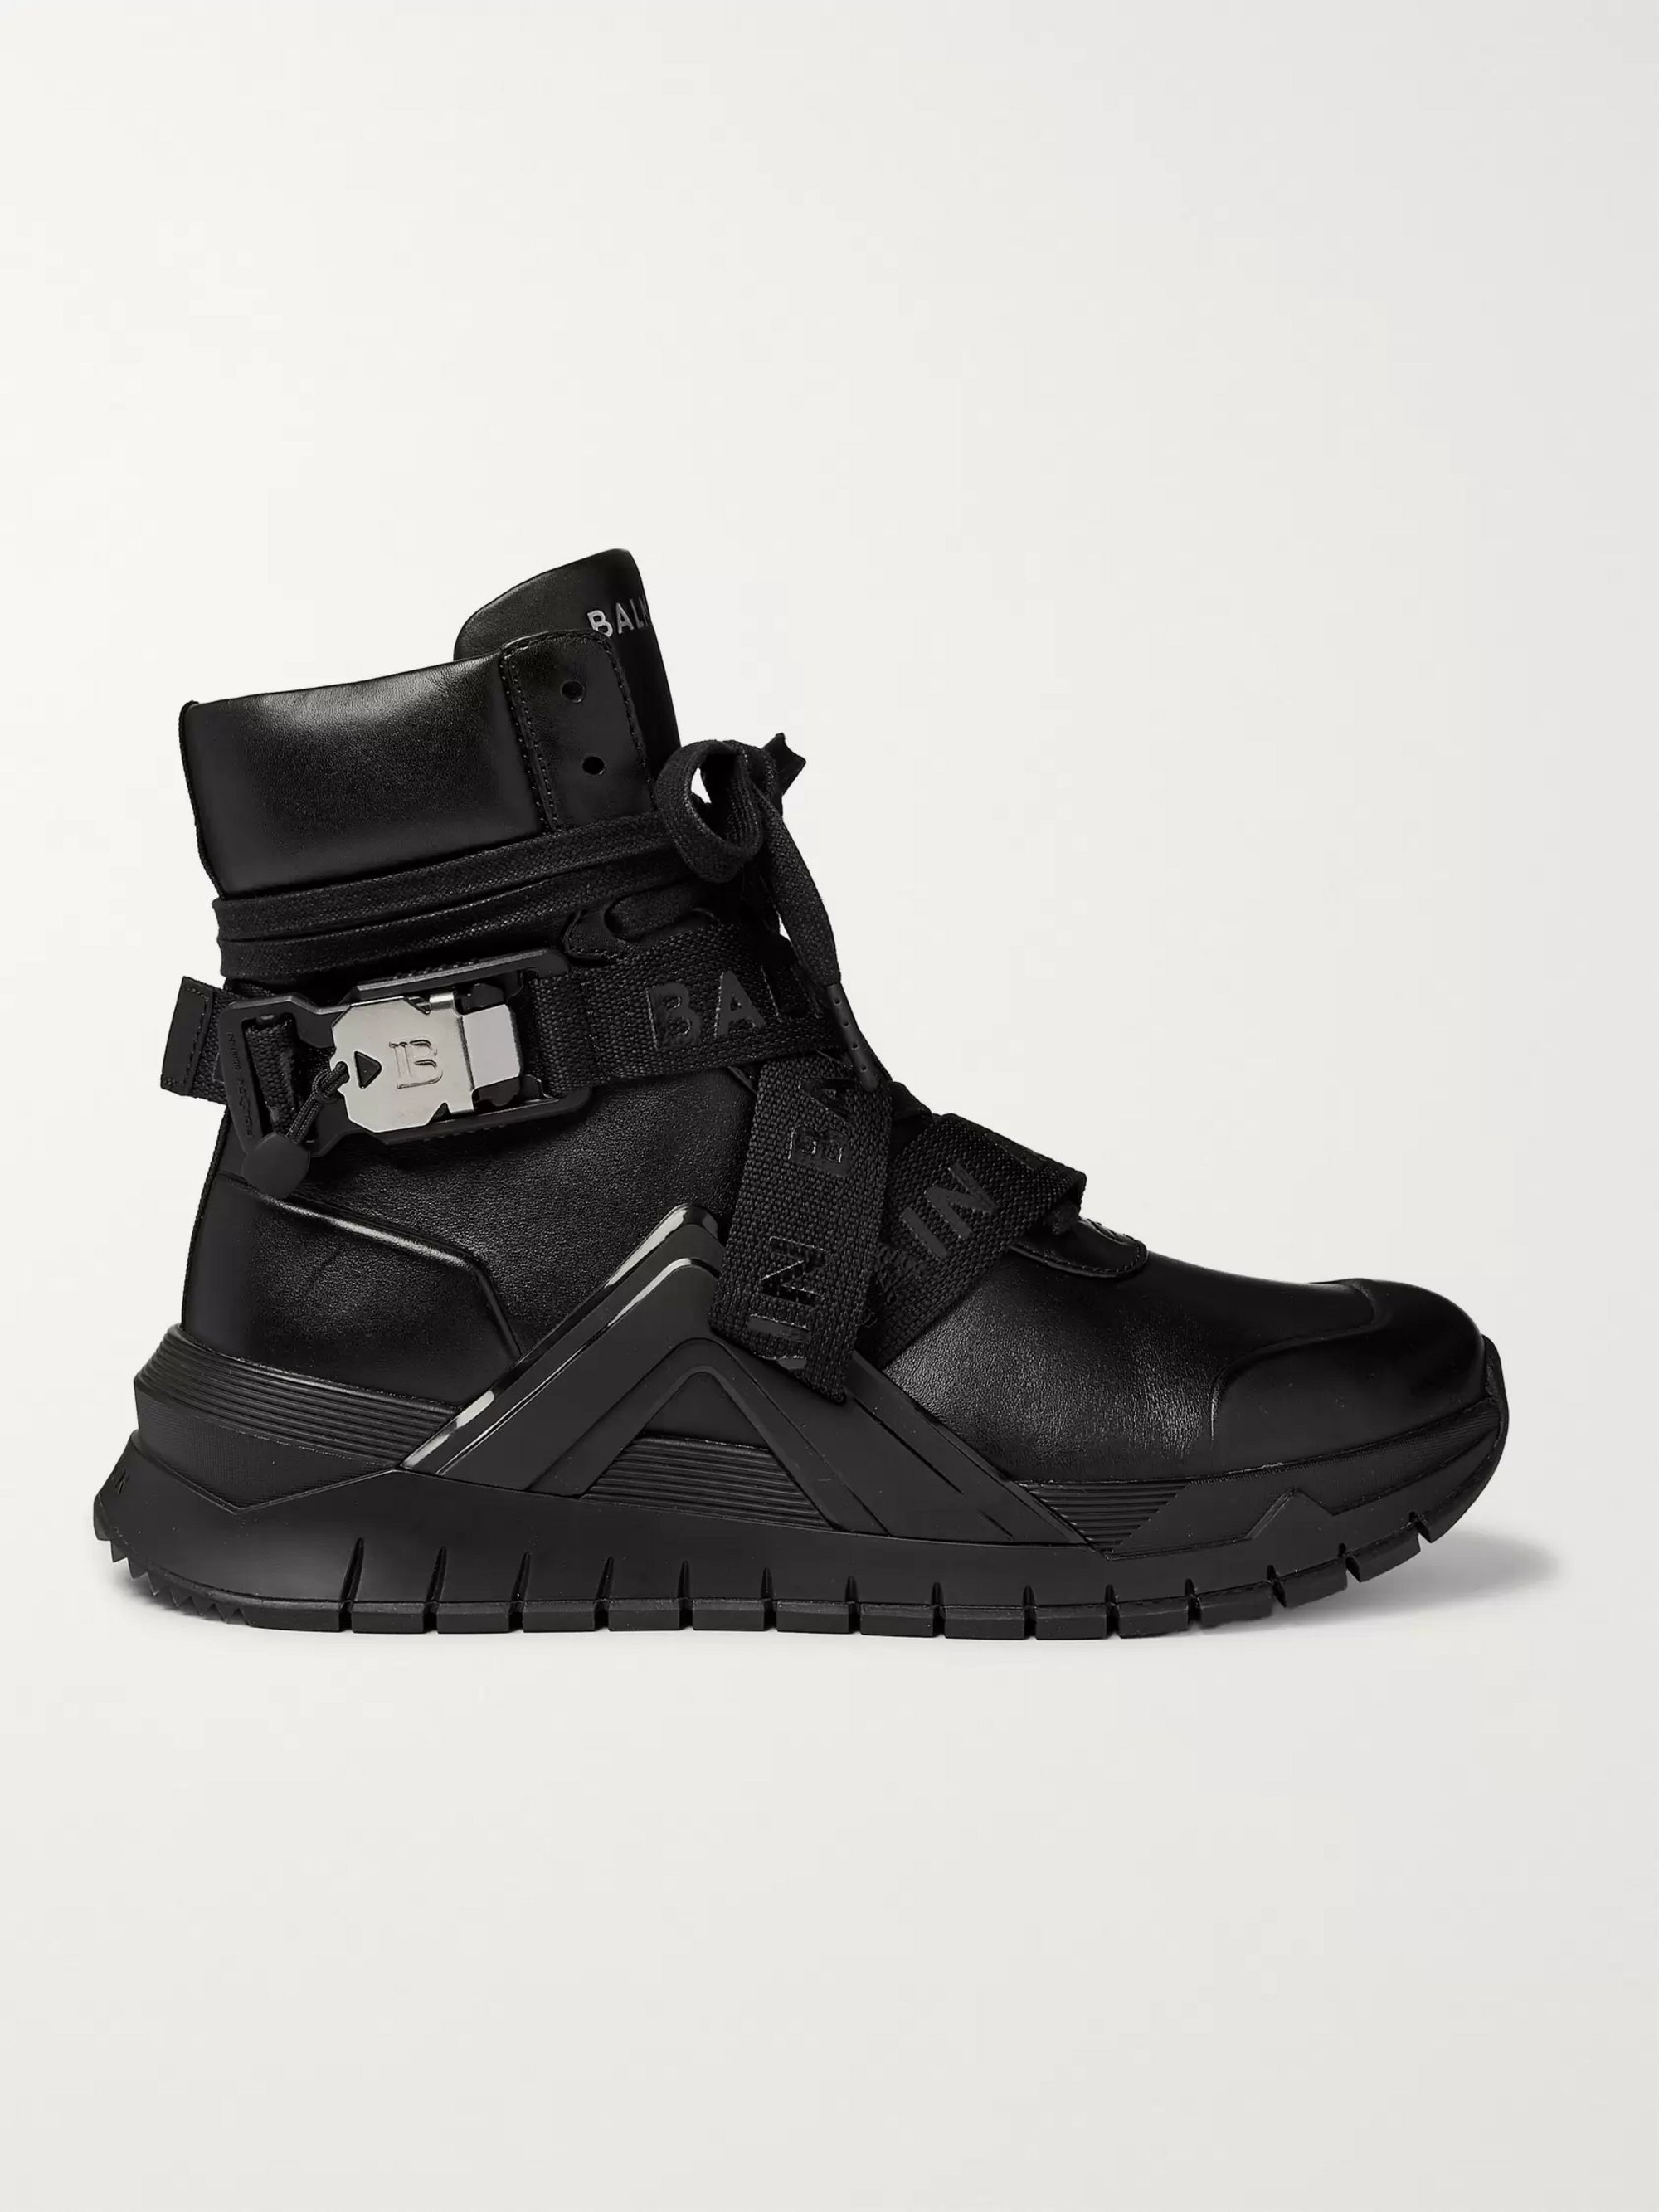 Balmain B-Troop Webbing-Trimmed Leather Sneakers